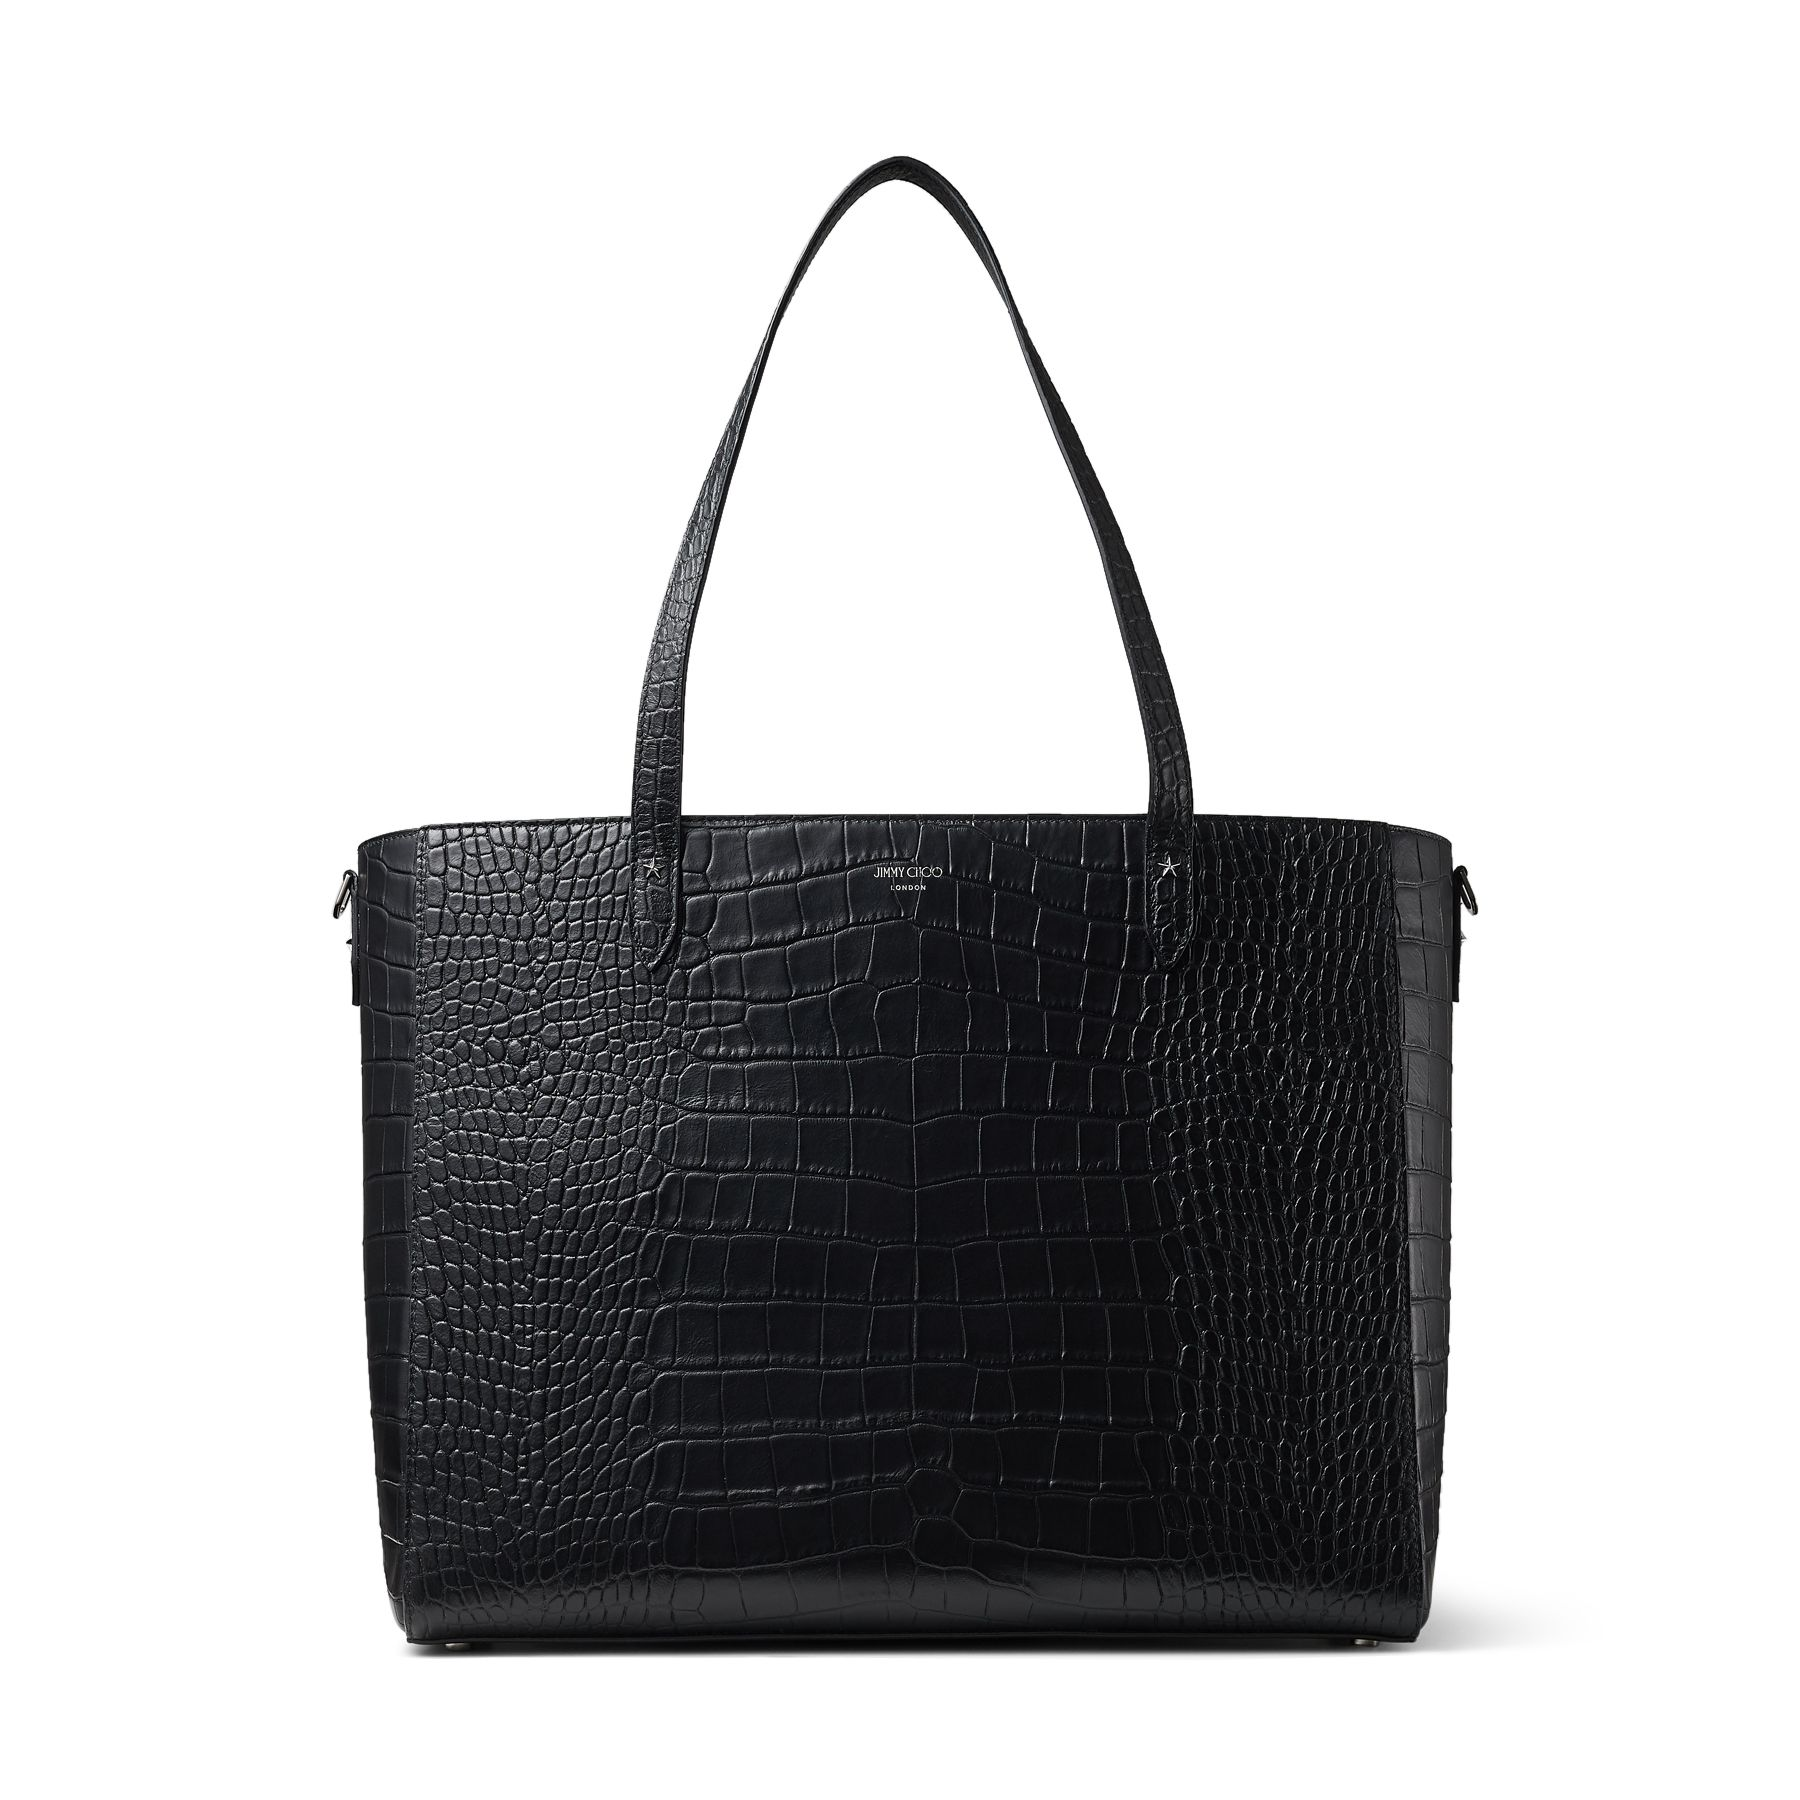 Our DEELAN in black croc-embossed leather is the perfect tote bag for town use. Finished with gunmetal star detailing and slim straps, it features a large interior compartment with fasteners and side pockets to allow you to safely carry your essentials.